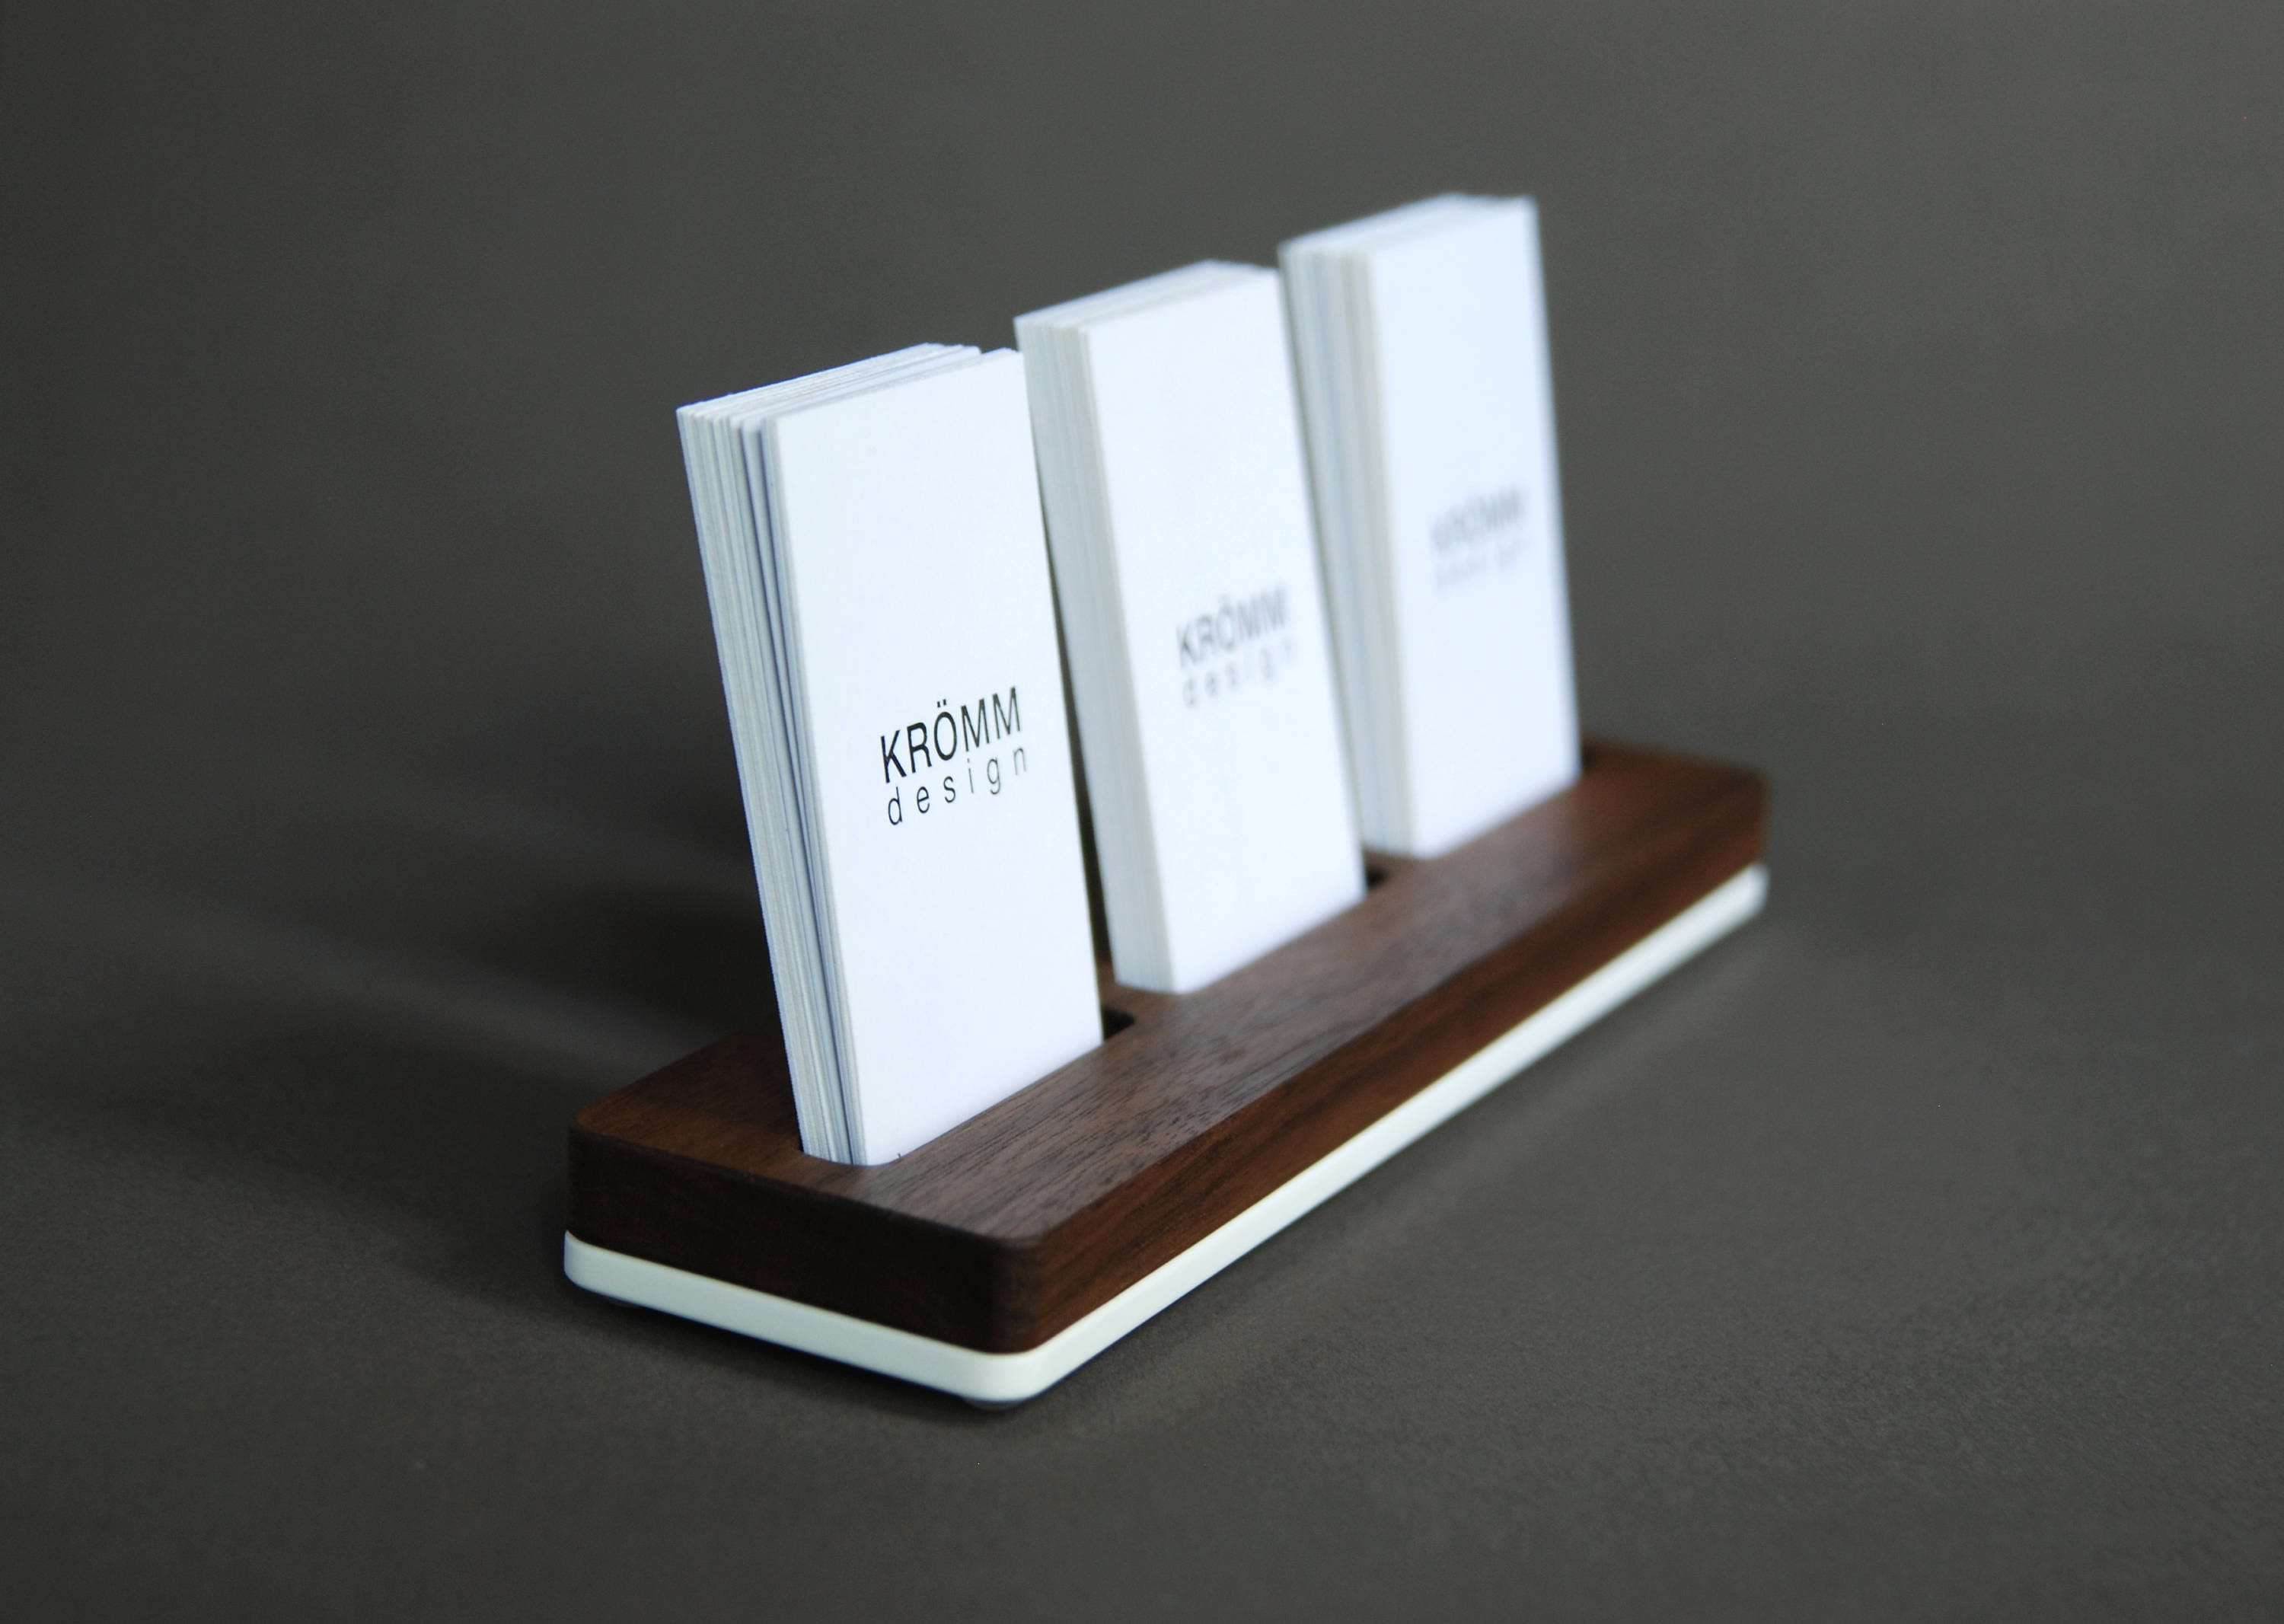 wood business card stand multiple moo business card holder walnut wood and acrylic 3 vertical business card stand - Vertical Business Card Holder